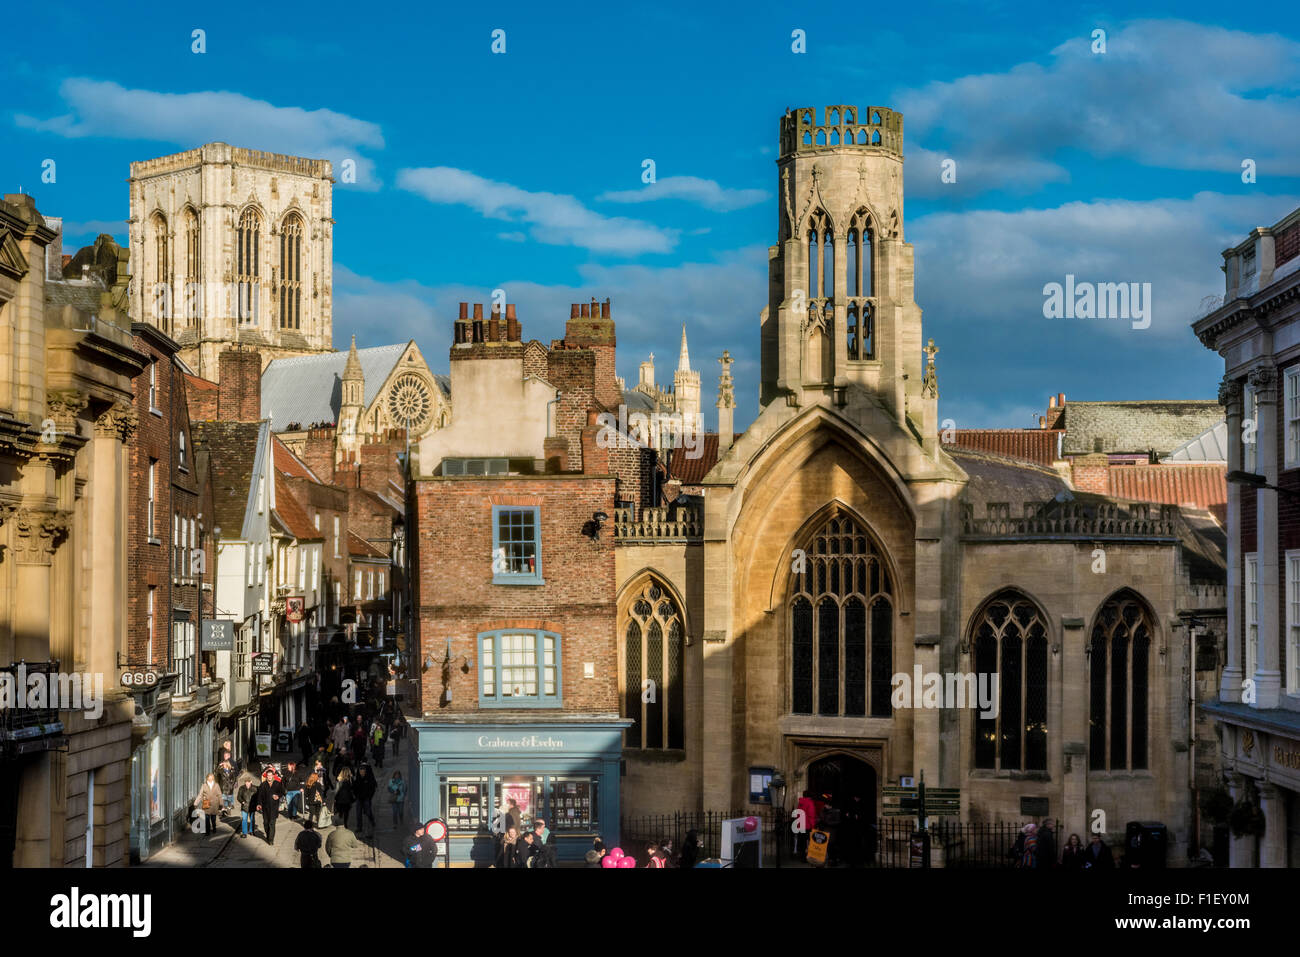 View of St Helen's Square and York Minster from The Mansion House, York. Lord Mayor's residence. - Stock Image